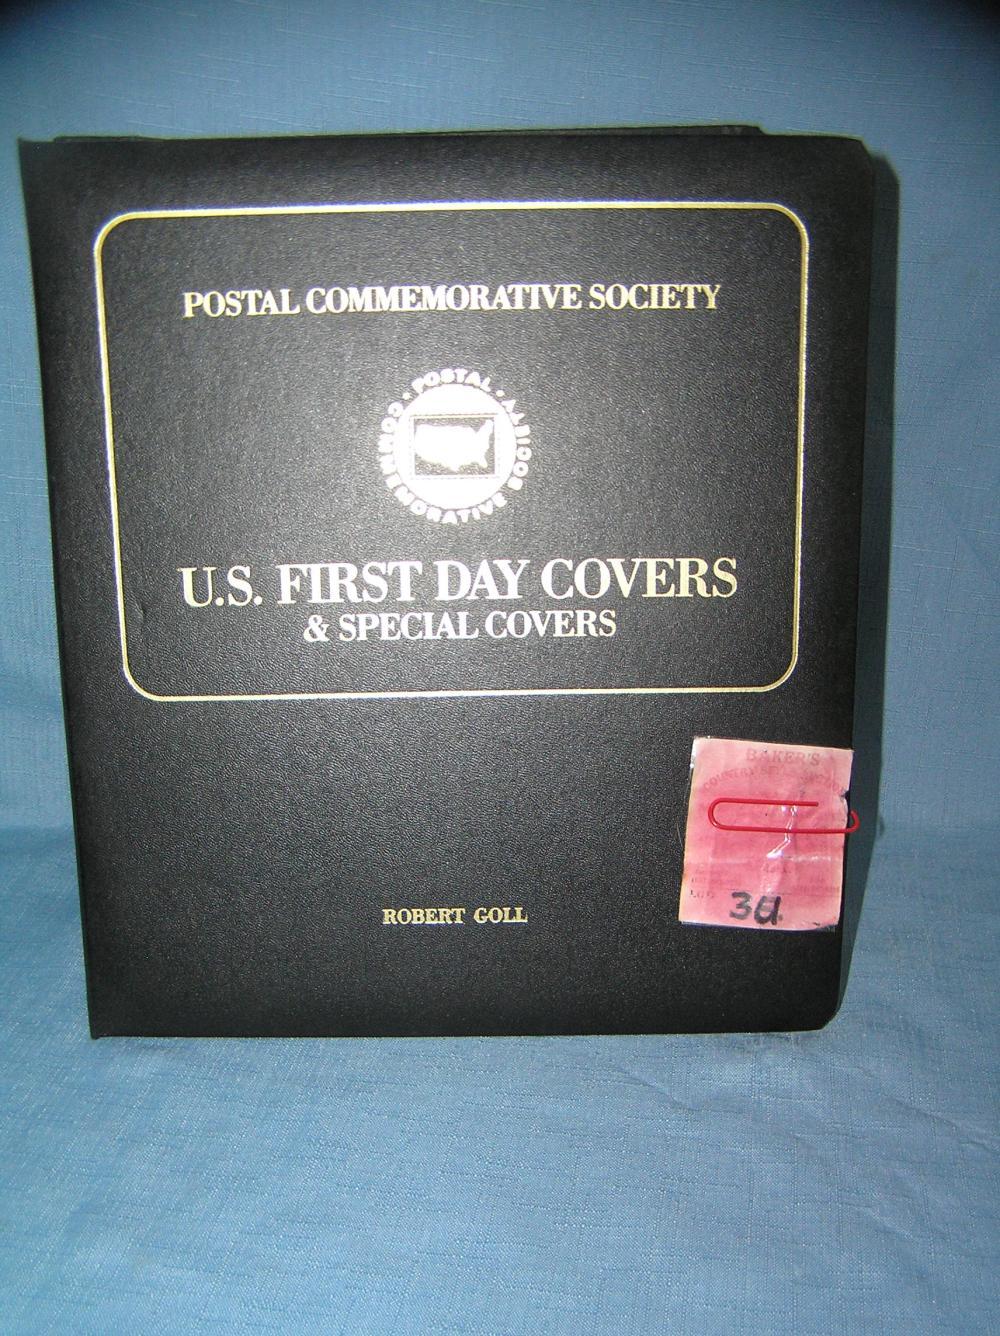 LARGE COLLECTION OF US FIRST DAY COVERS AND SPECIAL COVERS